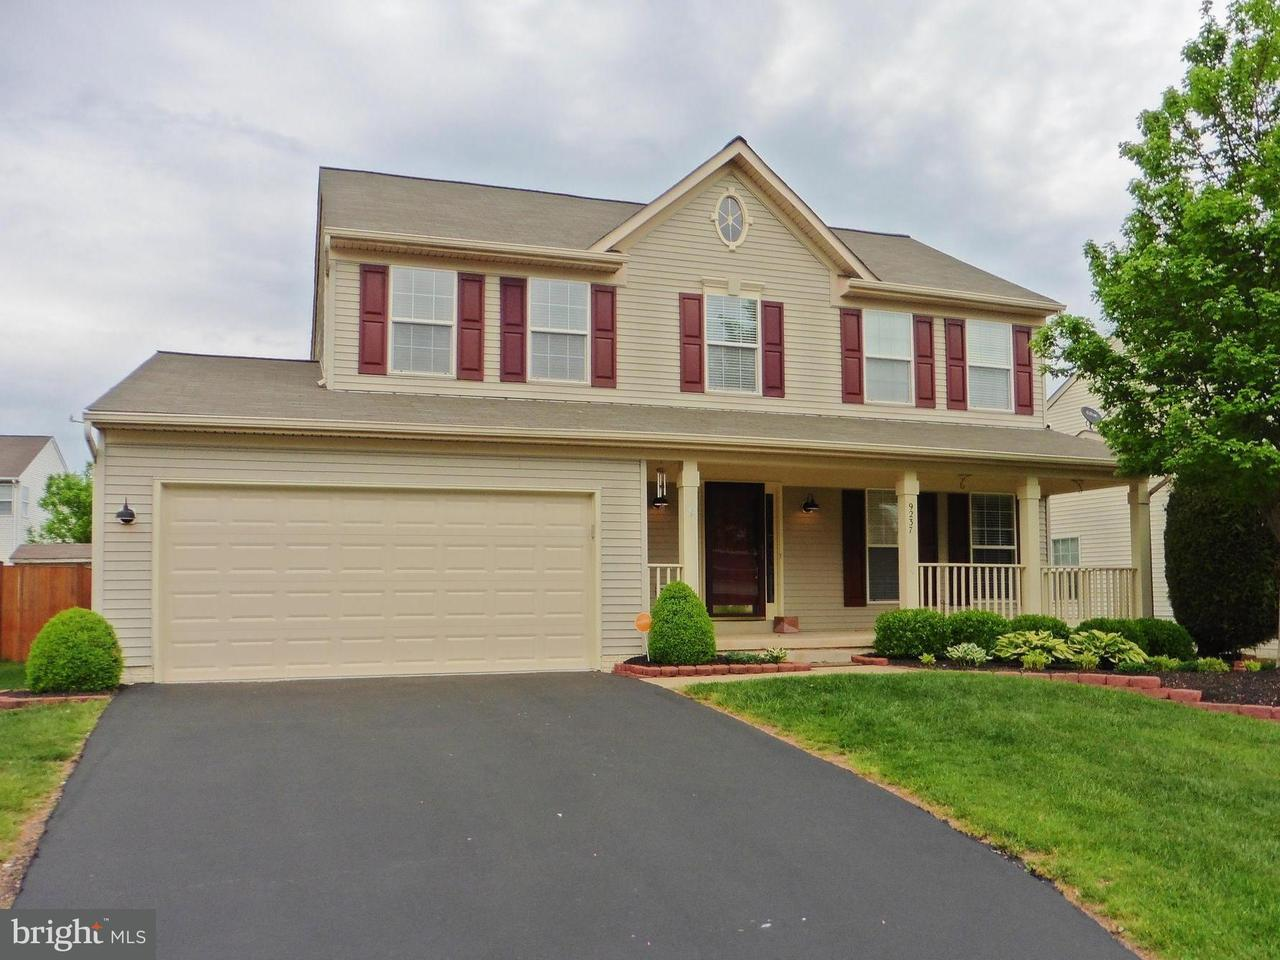 Manassas Park Real Estate — Homes for Sale in Manassas Park VA ...